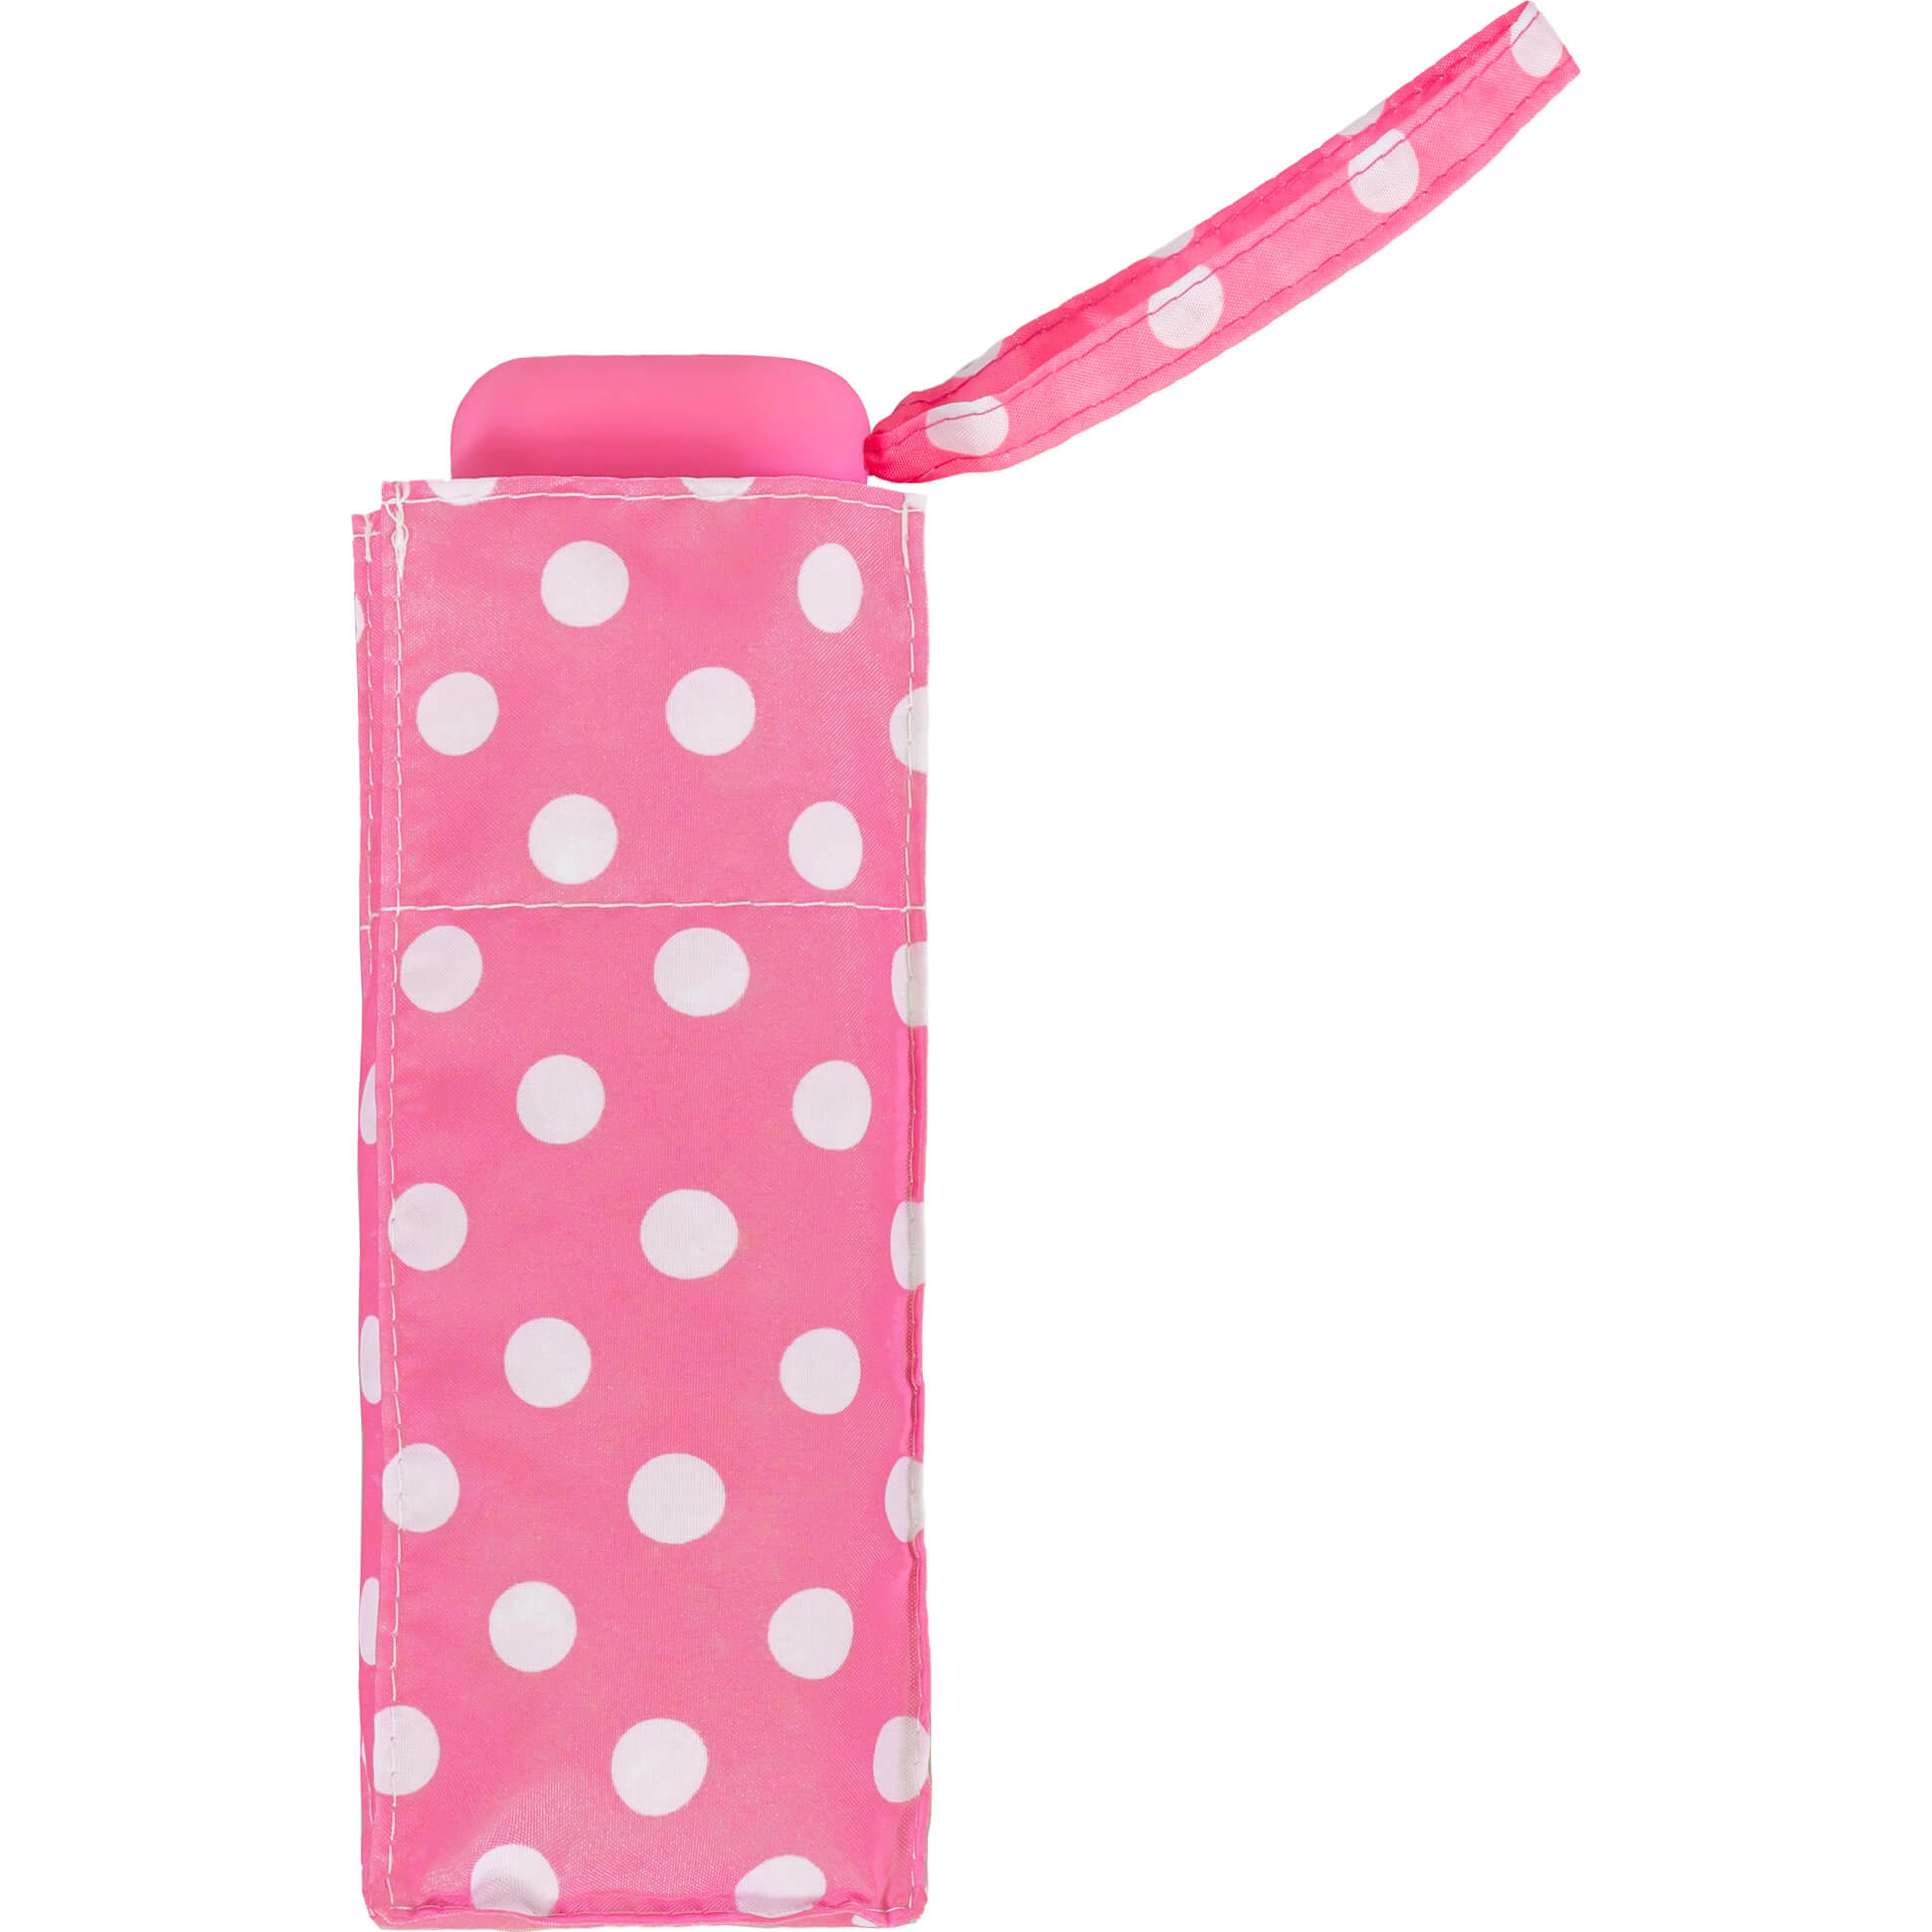 Pink Polka Dot Compact Umbrella (51033)